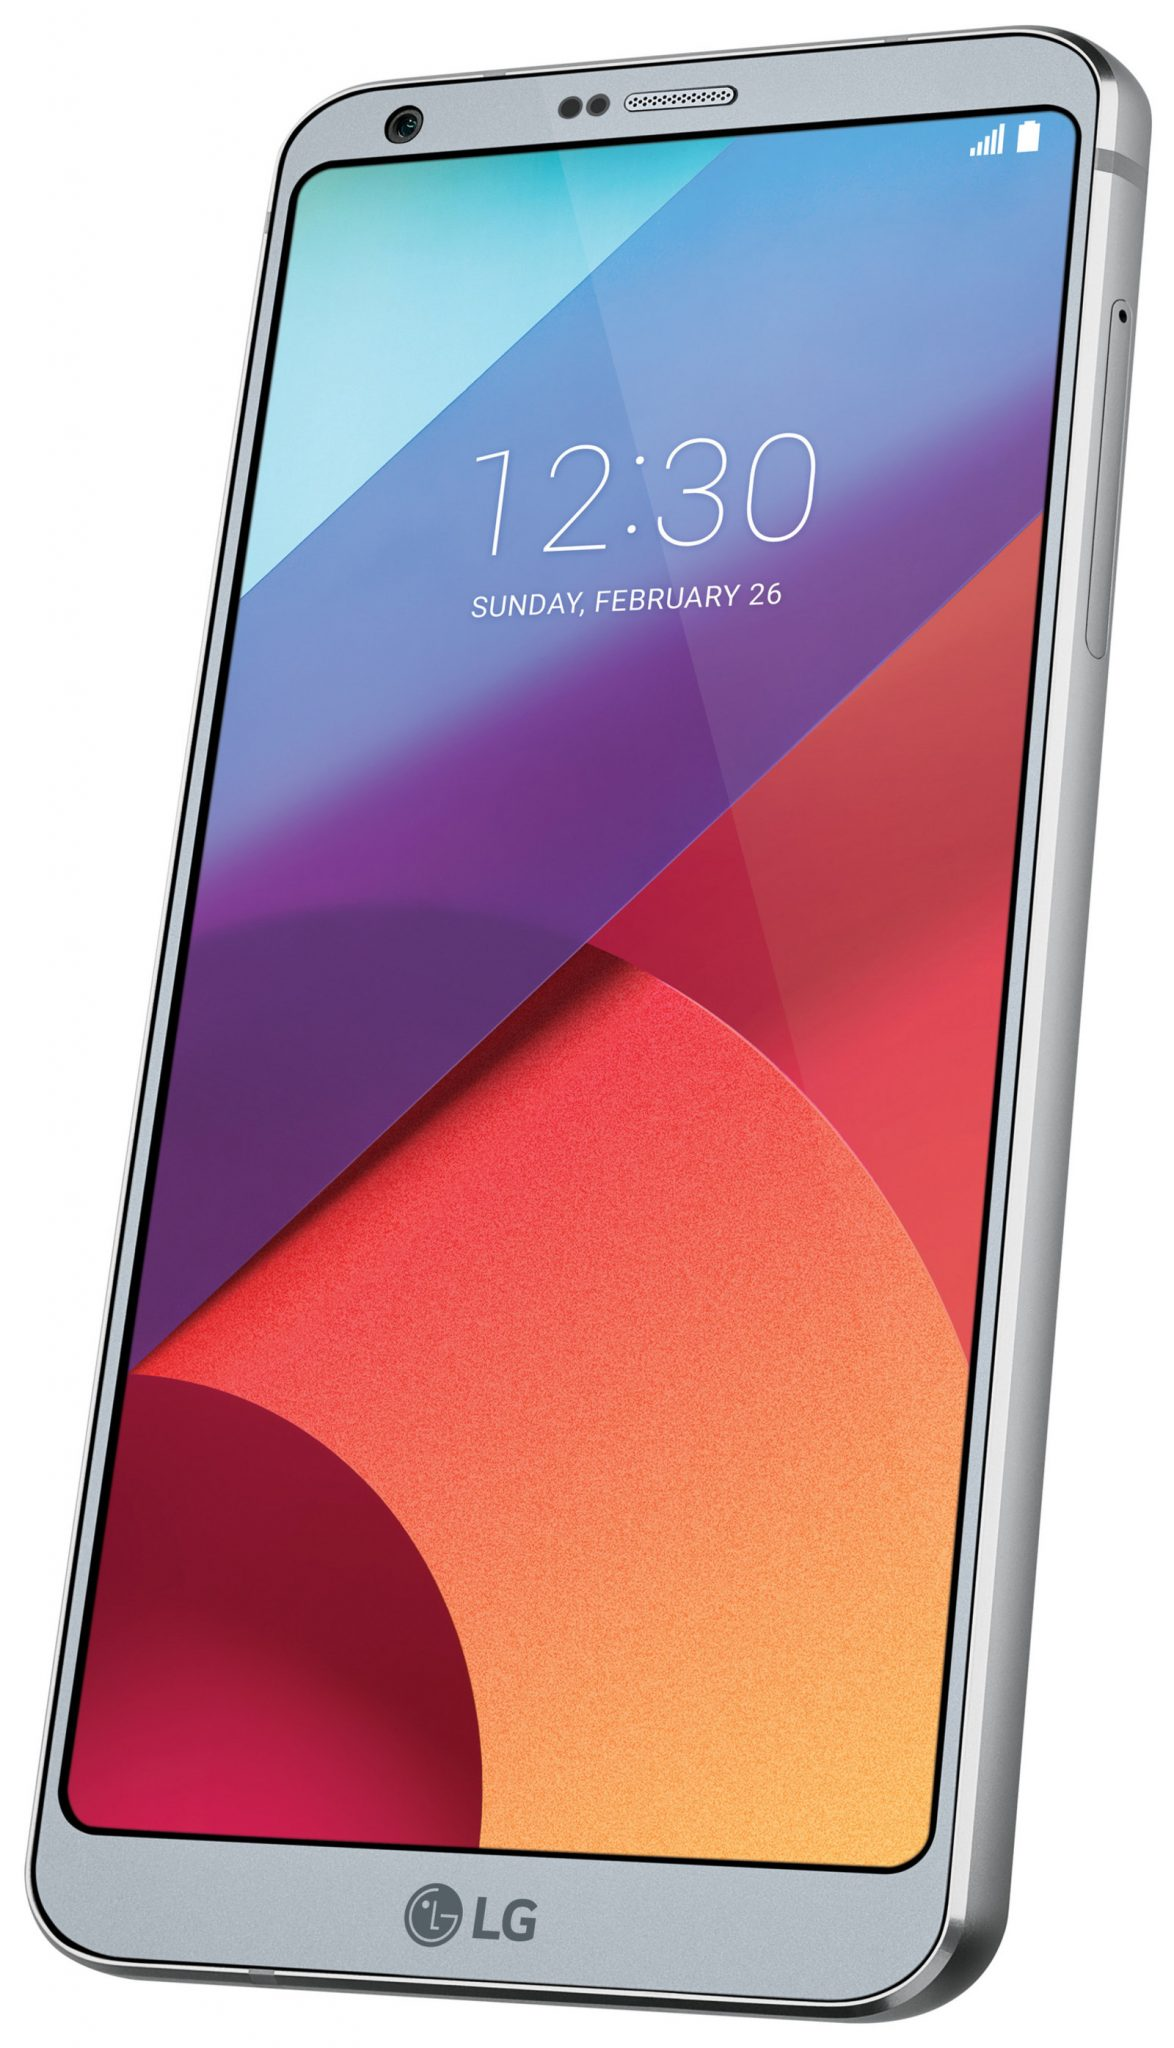 LG shows off new LG G6 smartphone